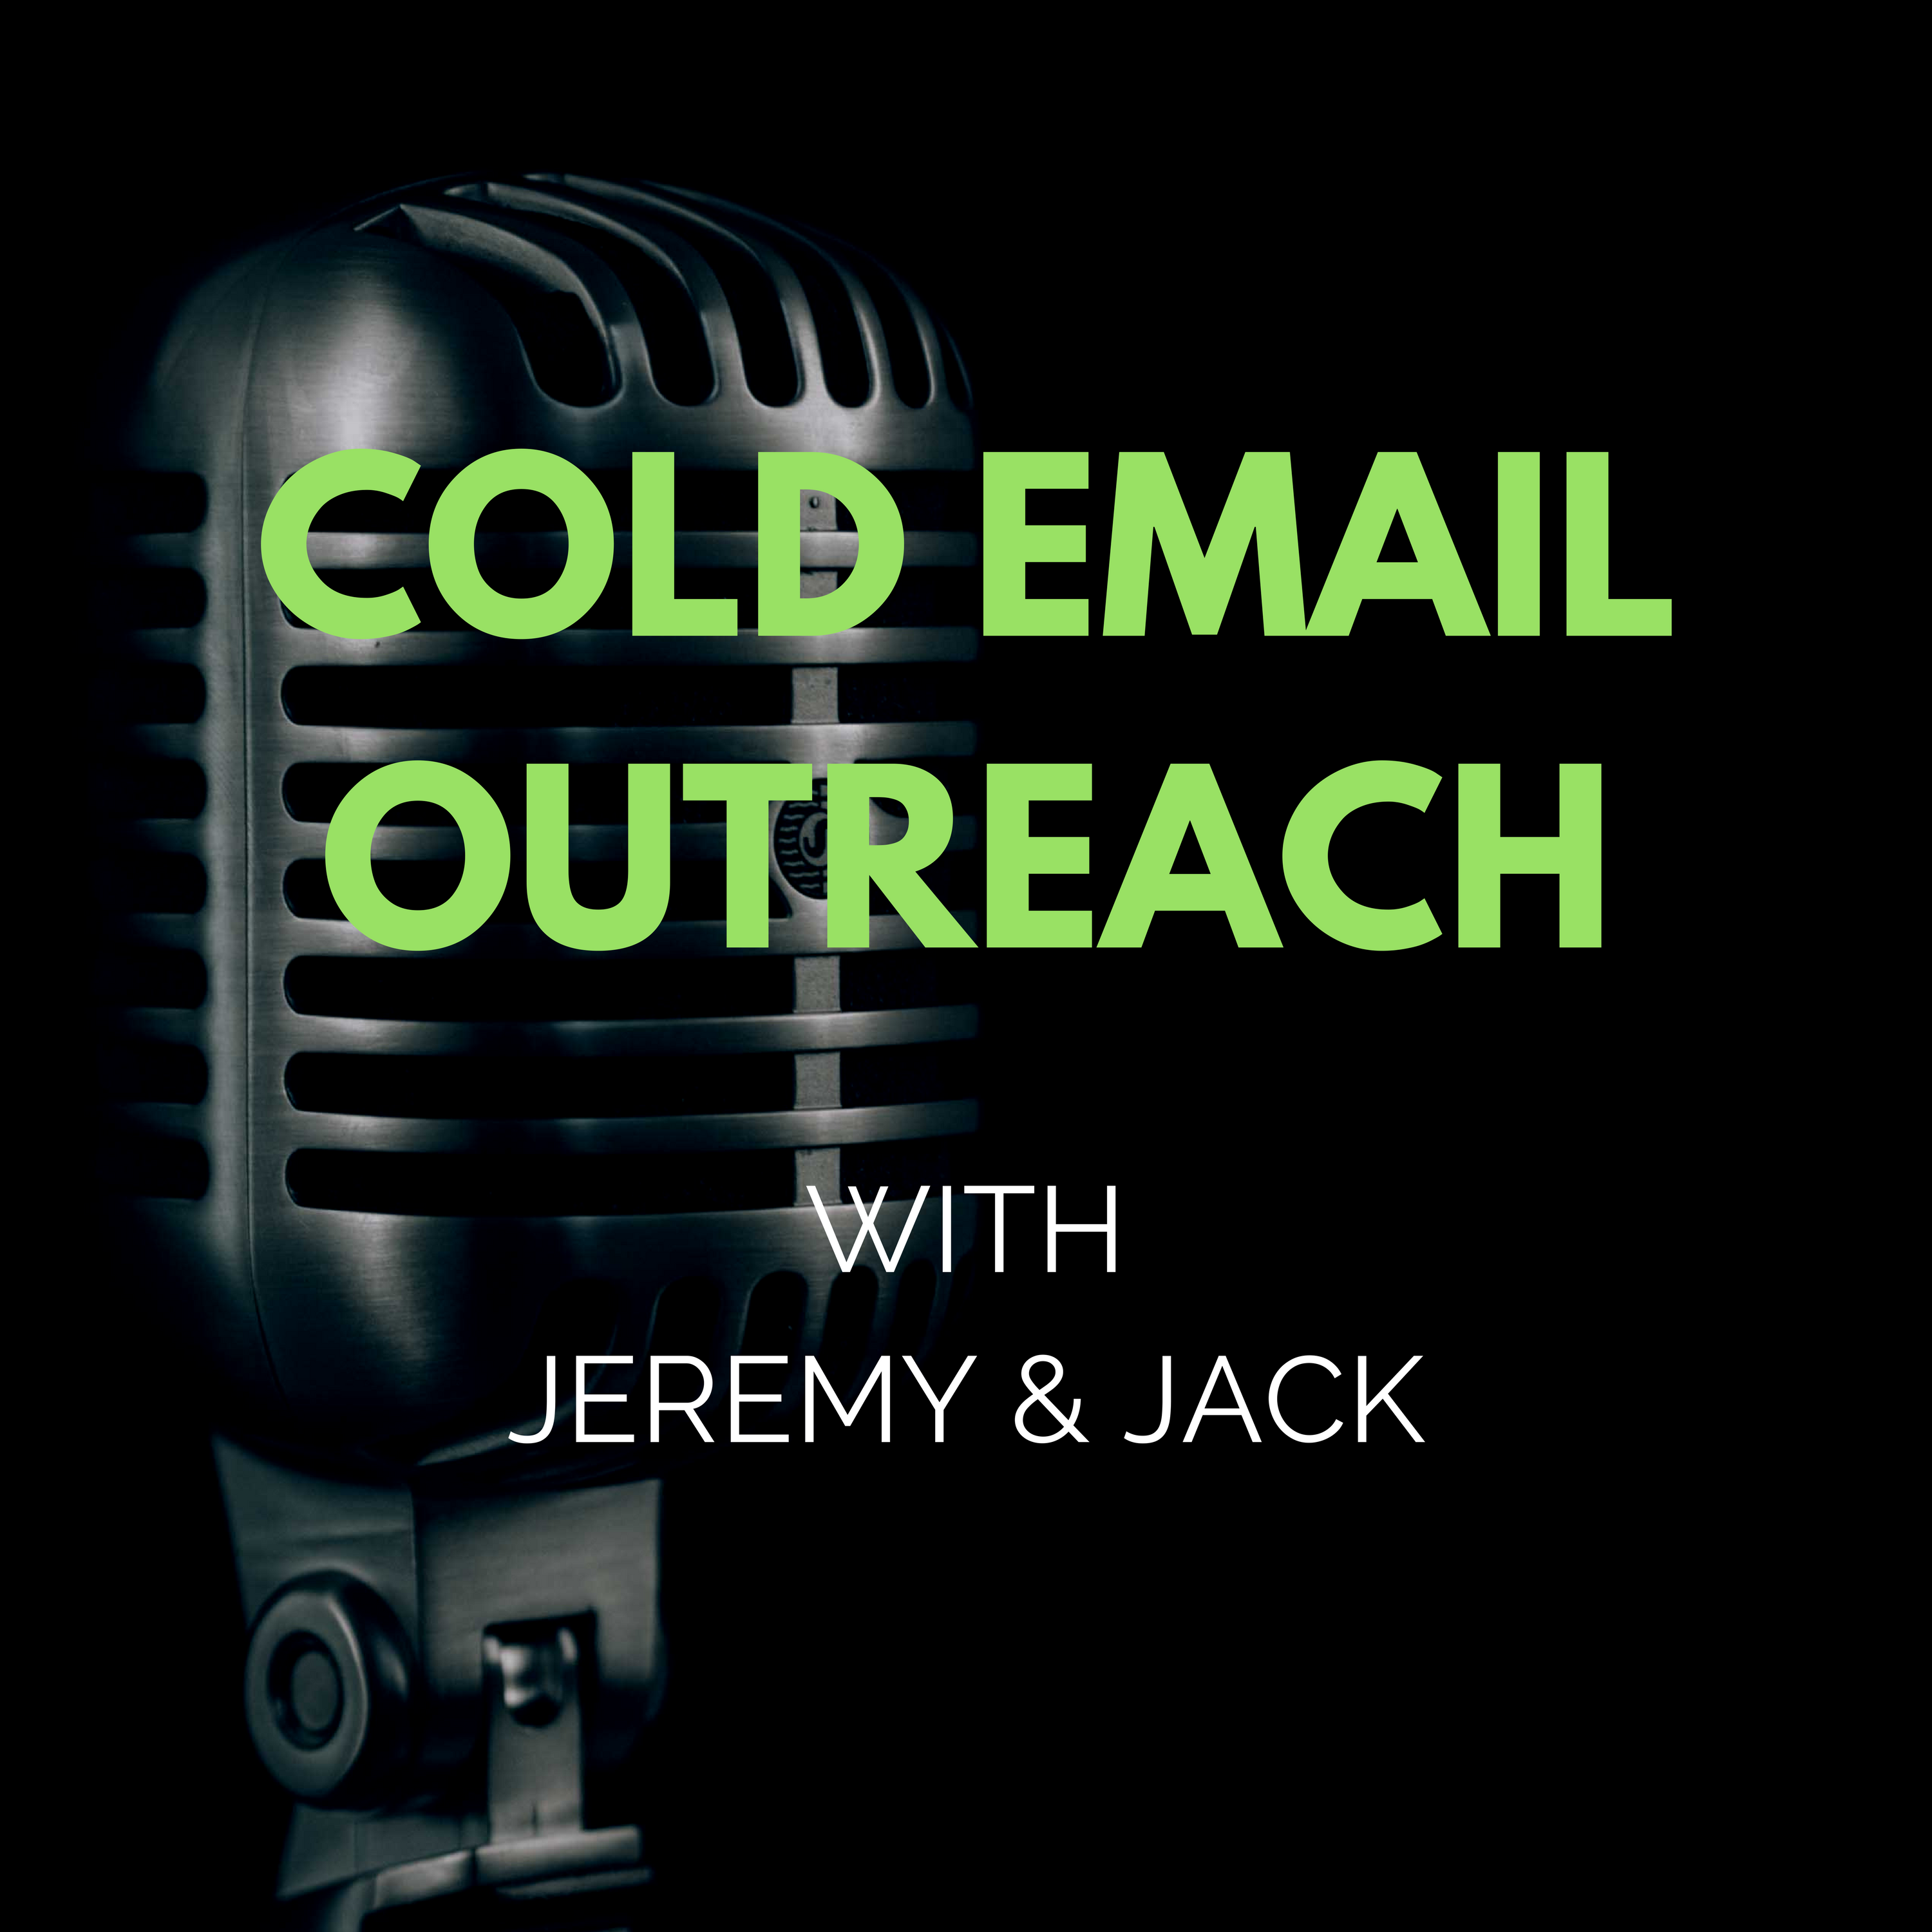 Cold Email Outreach with Jeremy & Jack show art